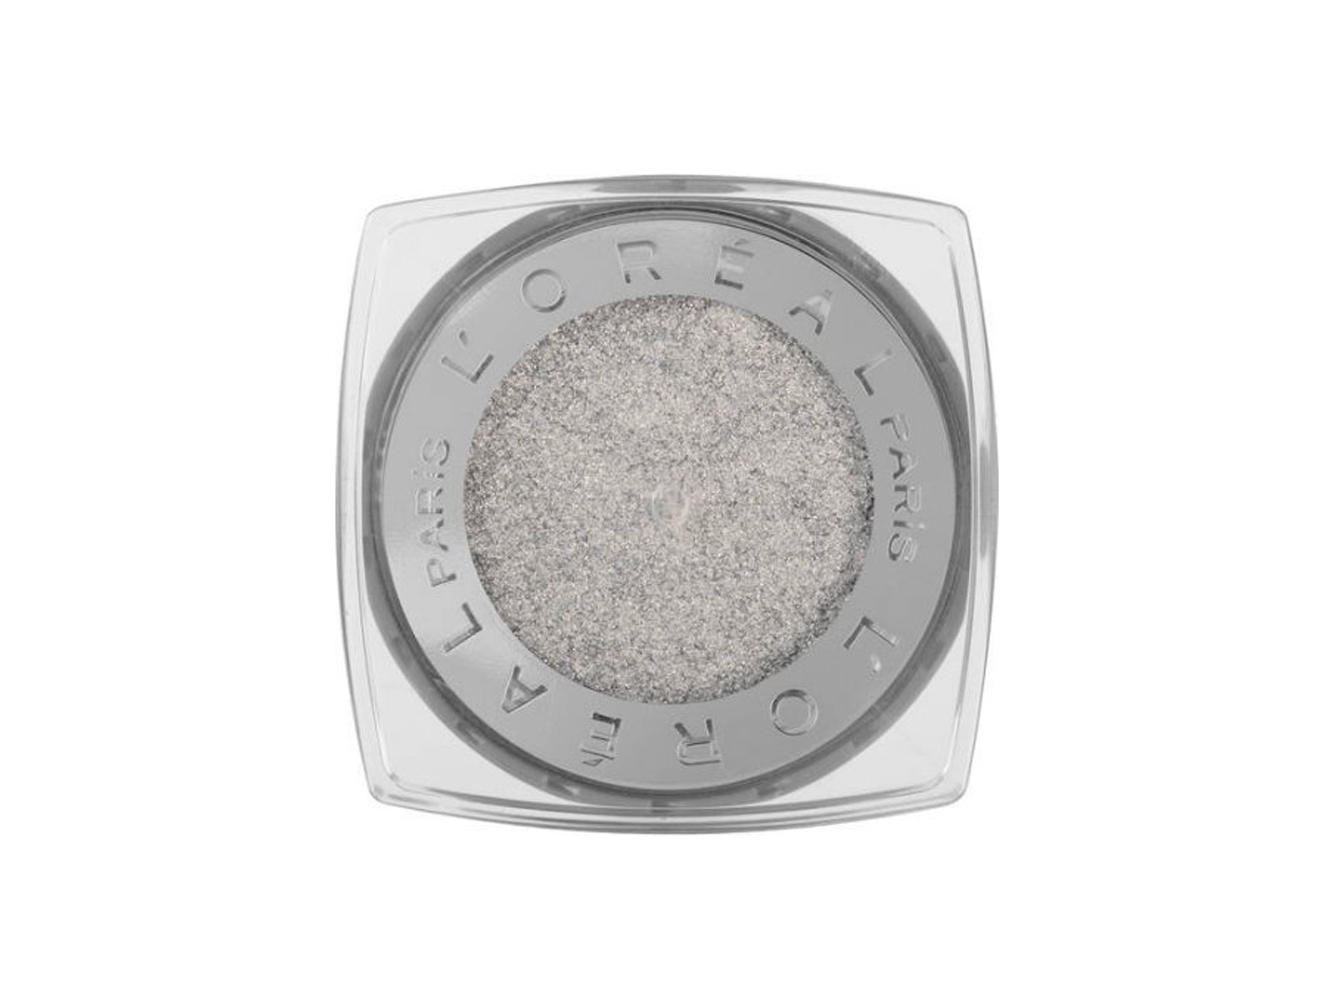 L'Oreal Paris Infallible 24 HR Eye Shadow